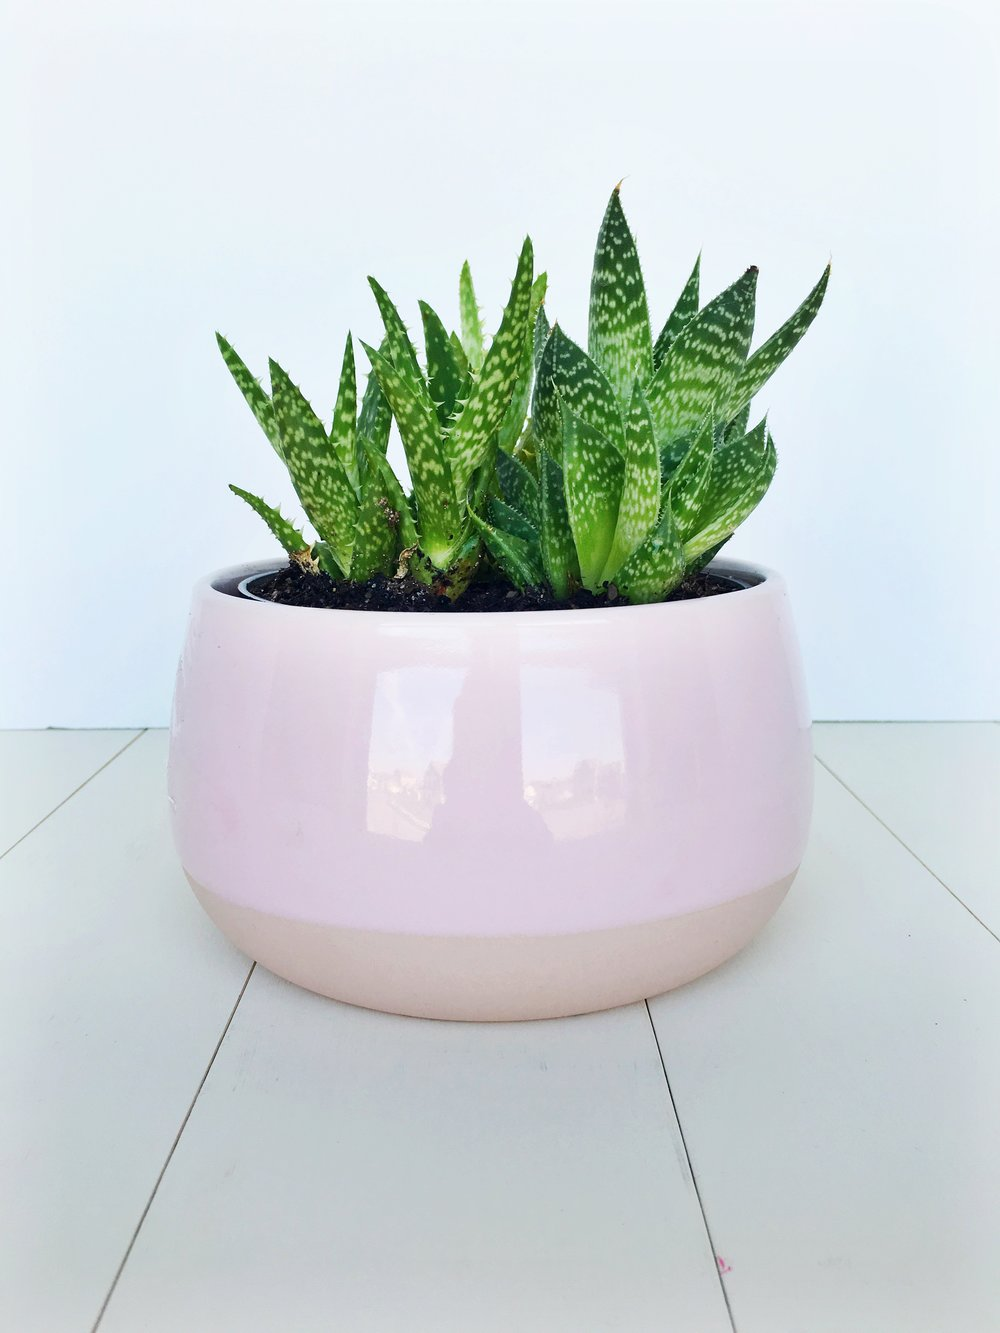 Pretty little plant from Ikea with a pink pot